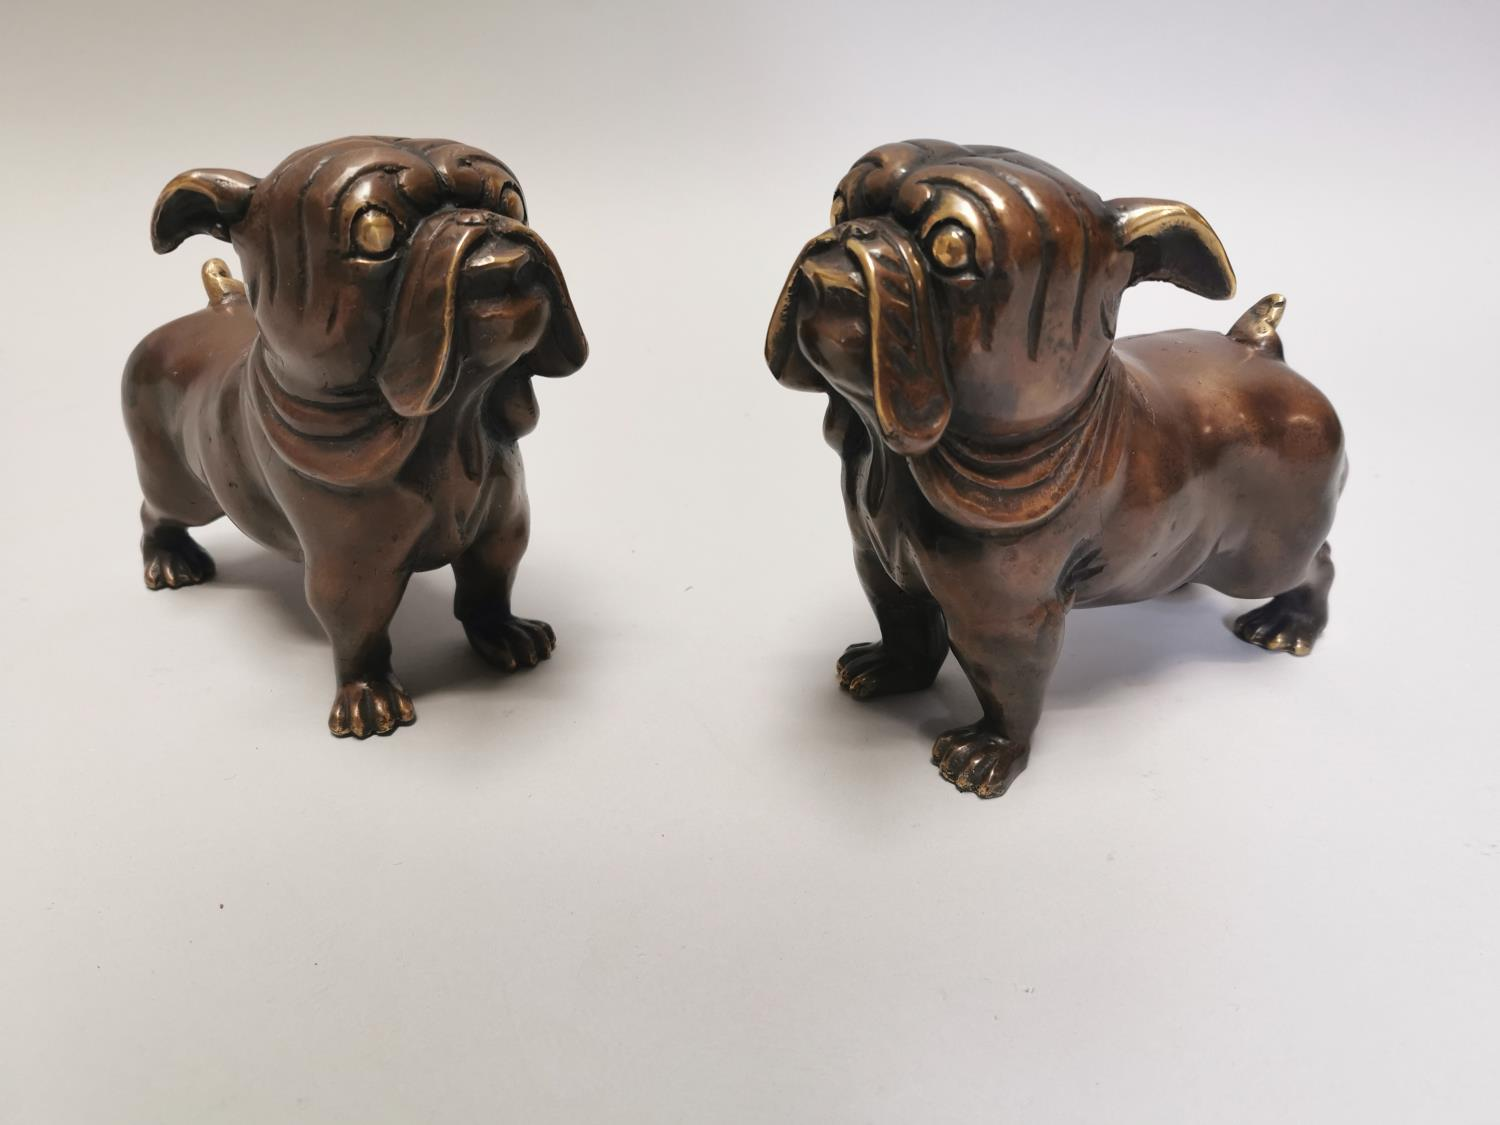 Pair of bronze models of pug dogs